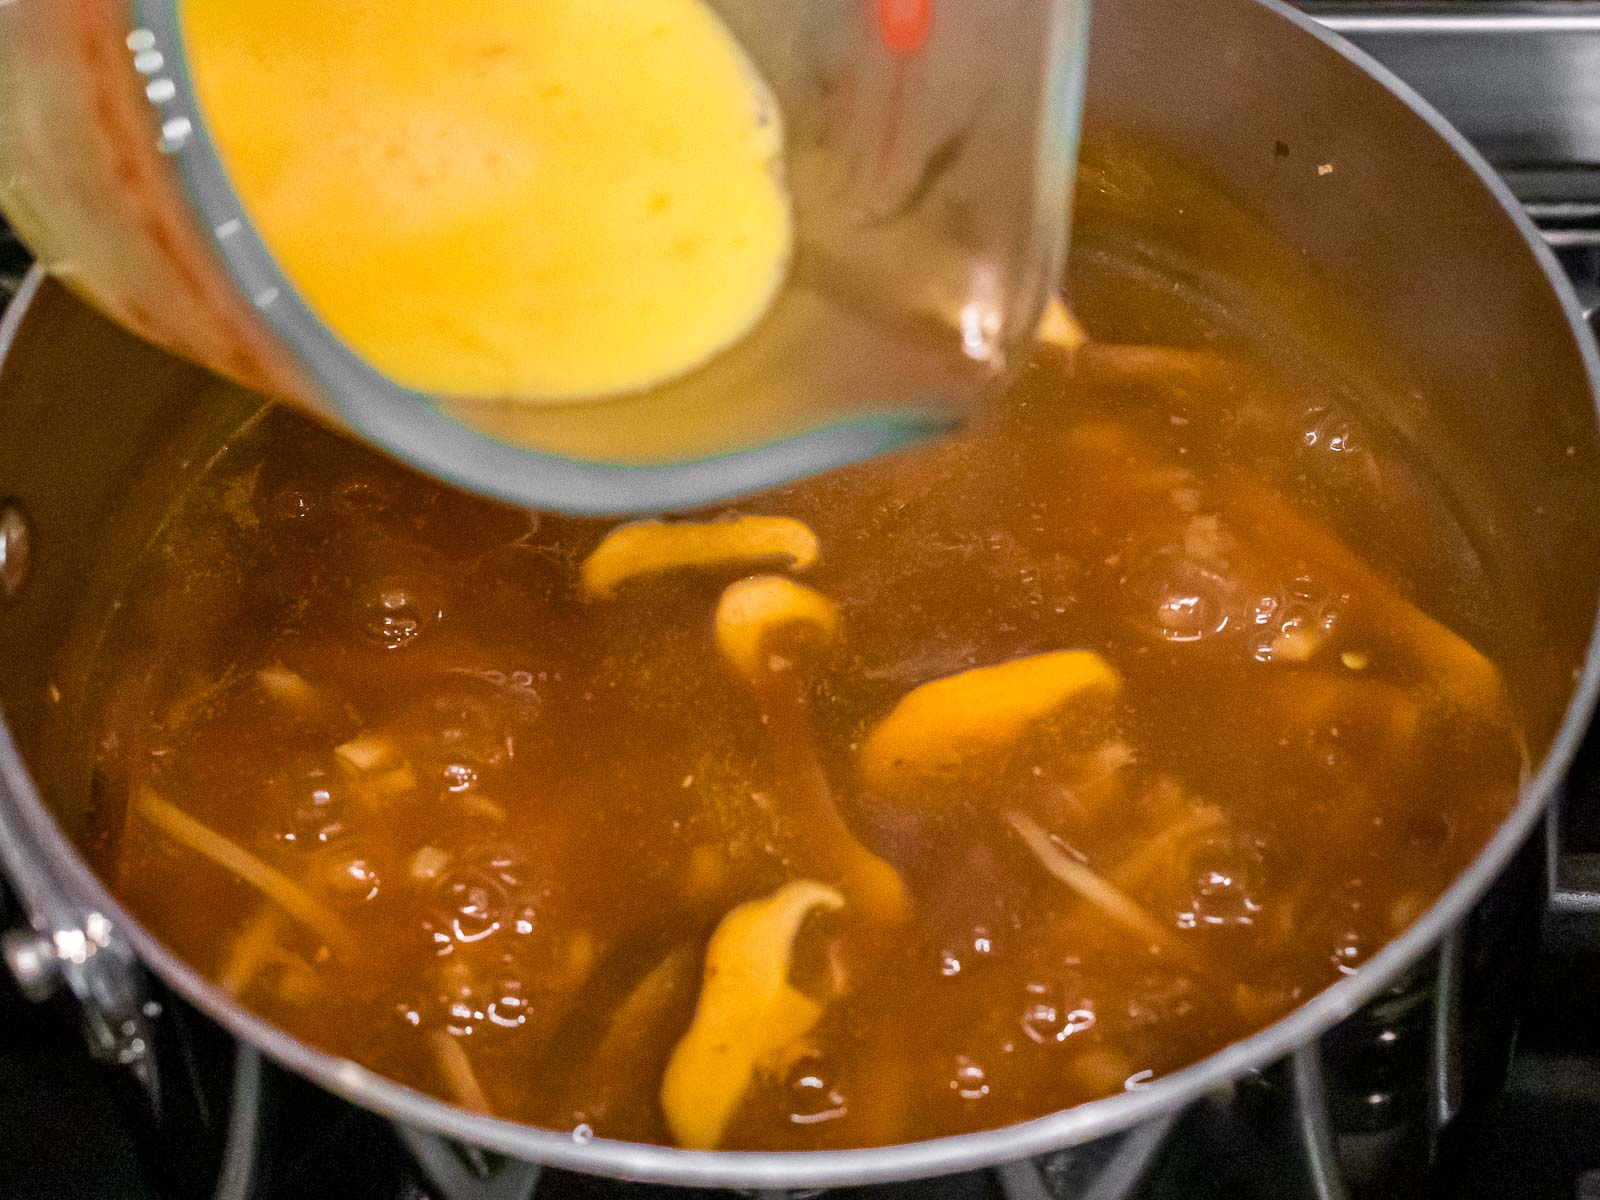 beaten eggs being added to hot and sour soup